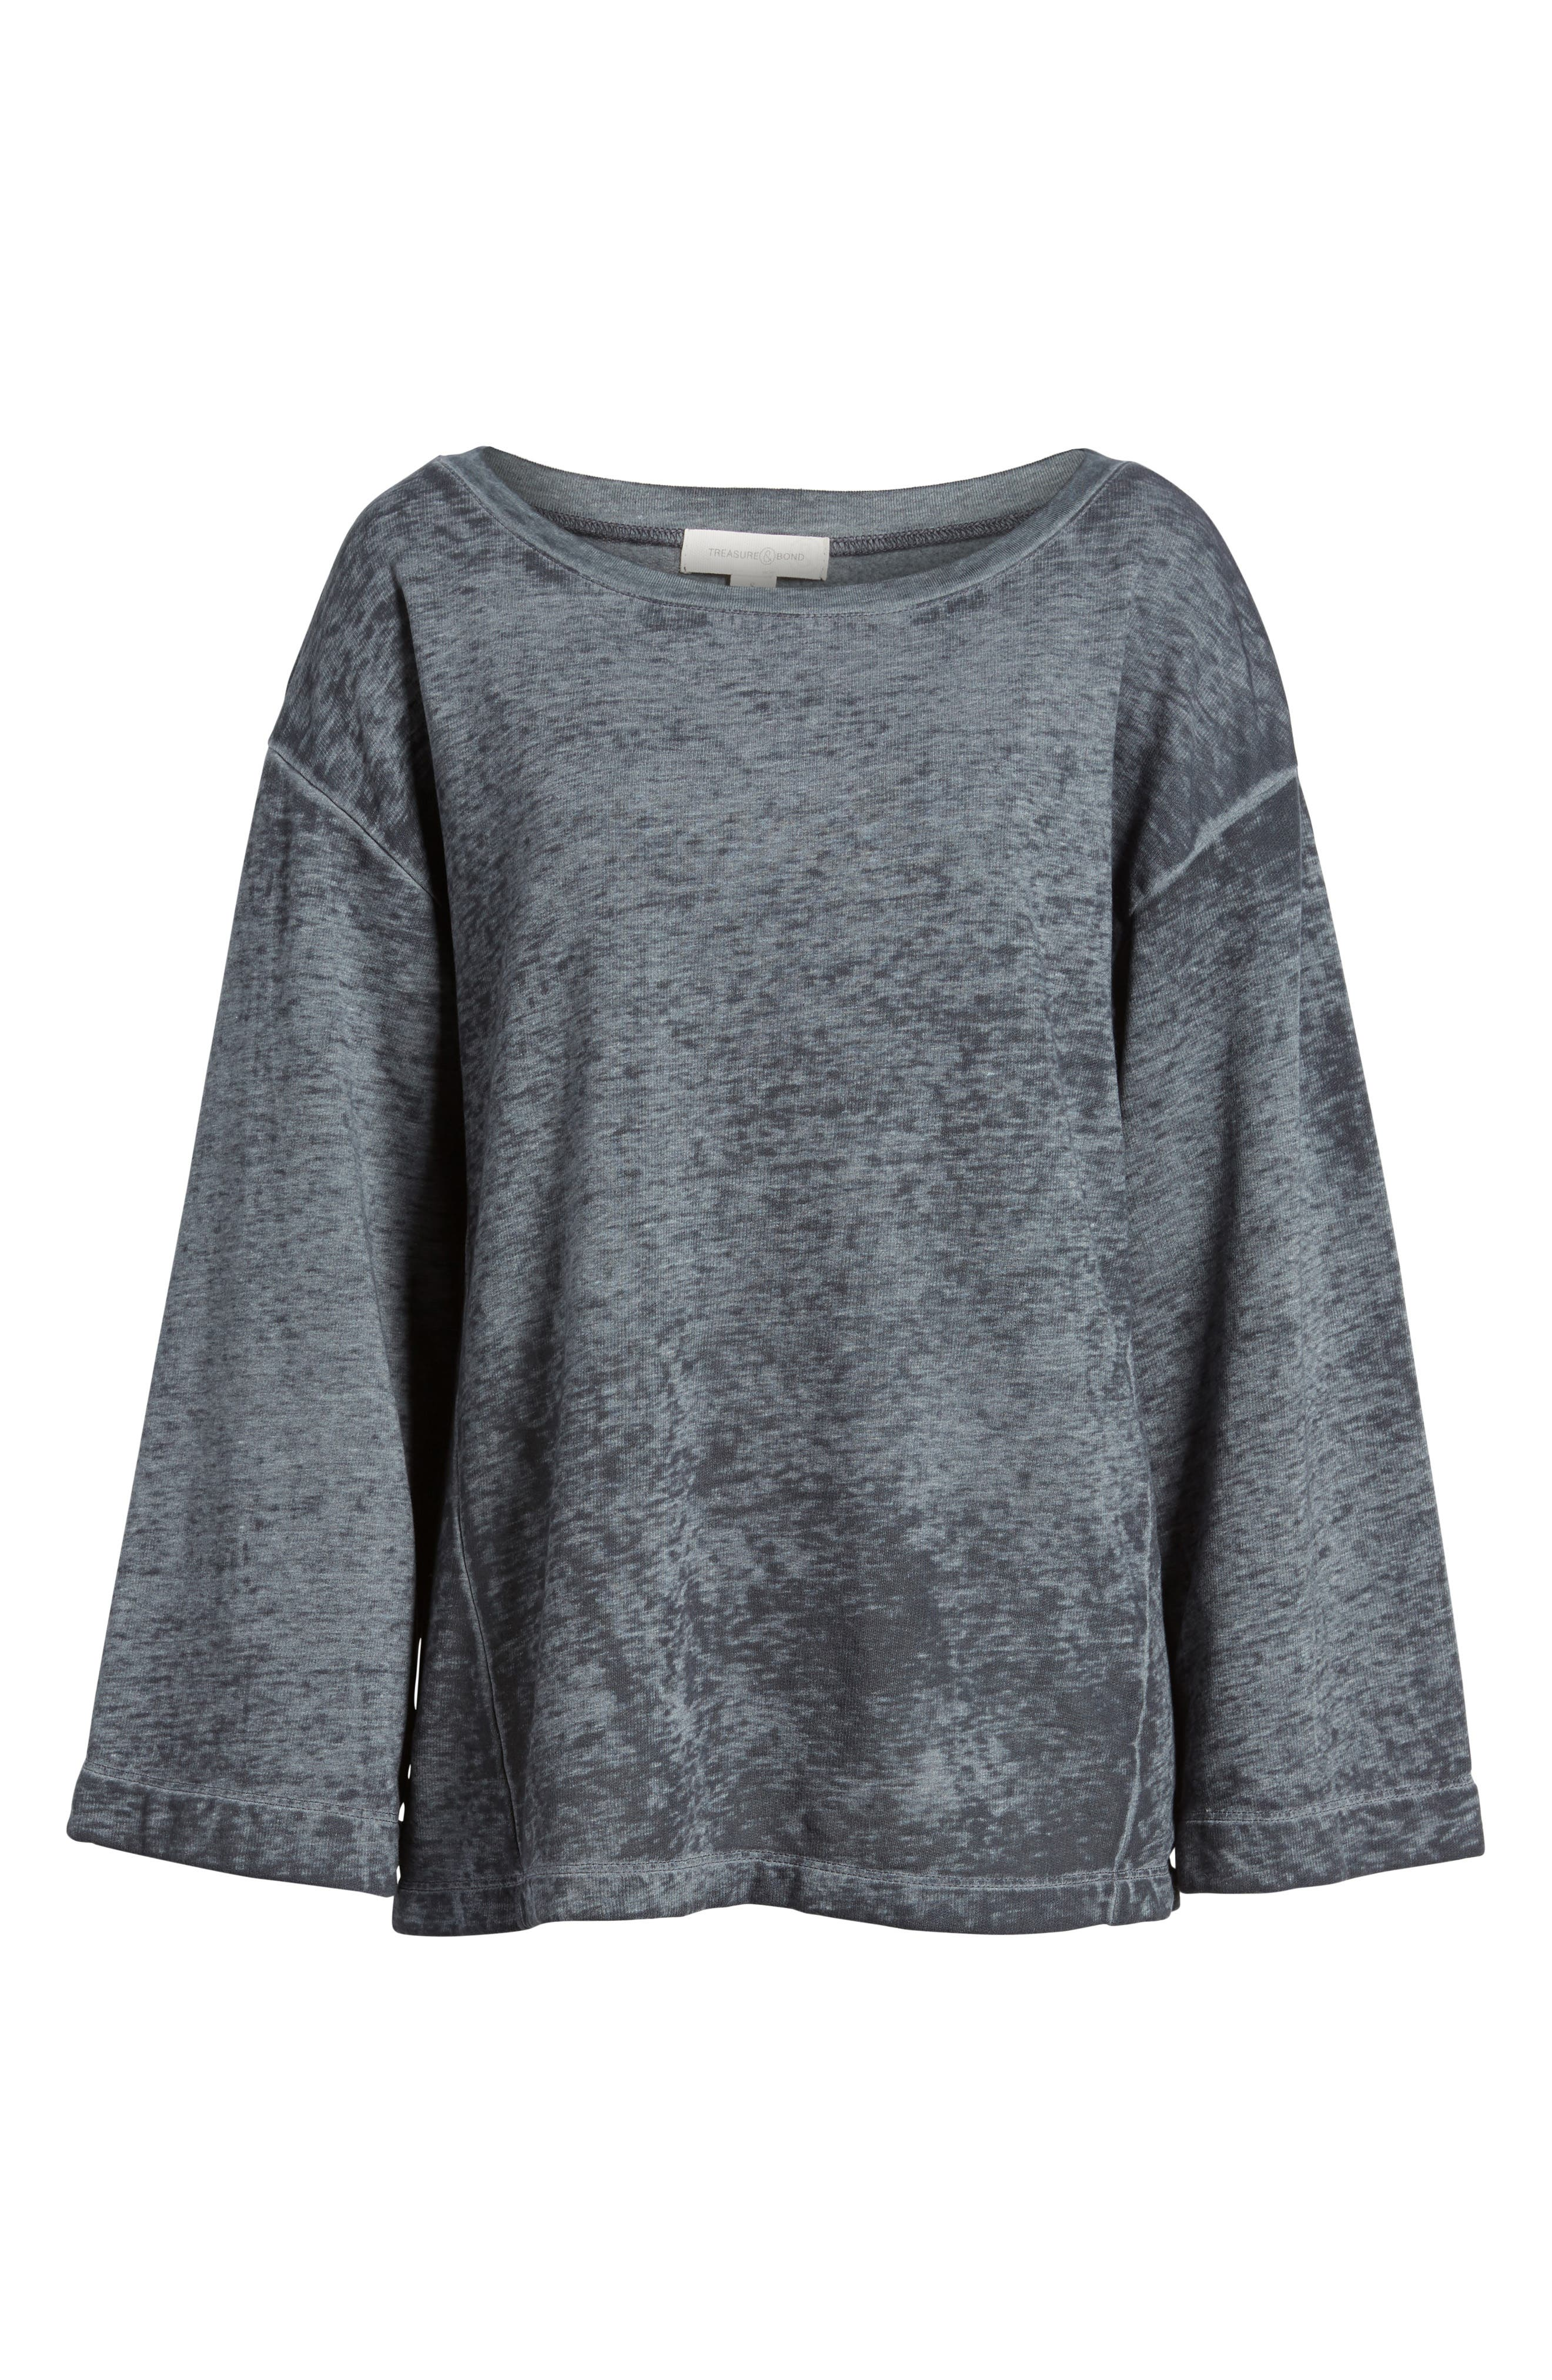 Bell Sleeve Sweatshirt,                             Alternate thumbnail 6, color,                             020